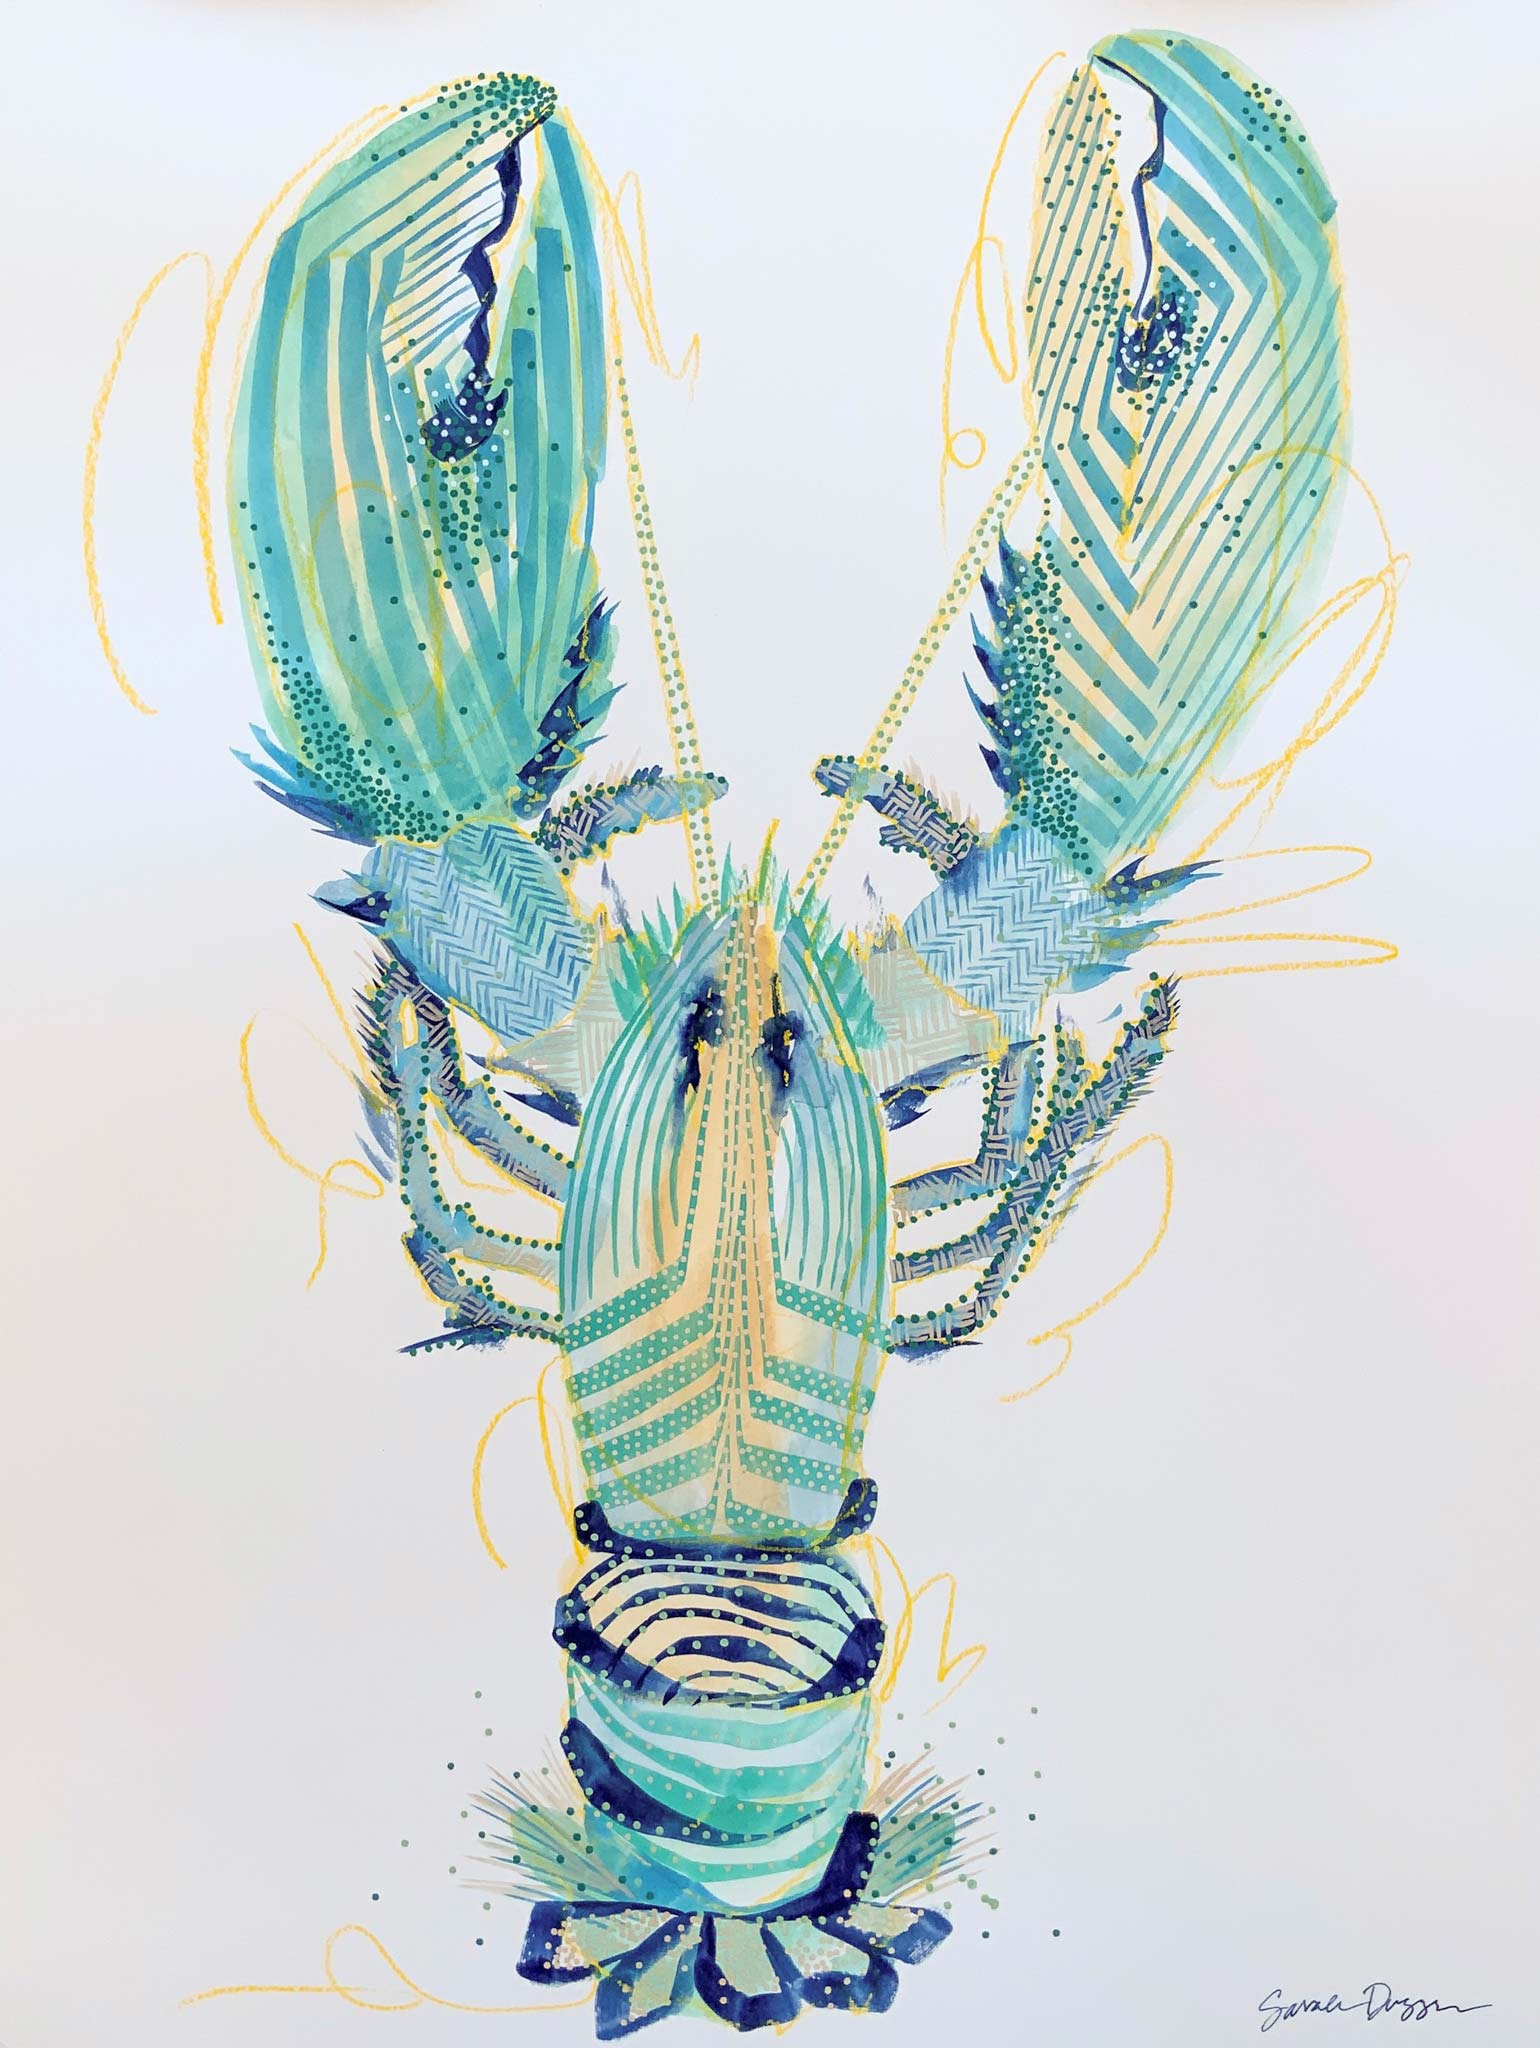 gouache, singular subject lobster in aqua, blues and yellow, white ground, bold lines, layered lines create form, graphic style